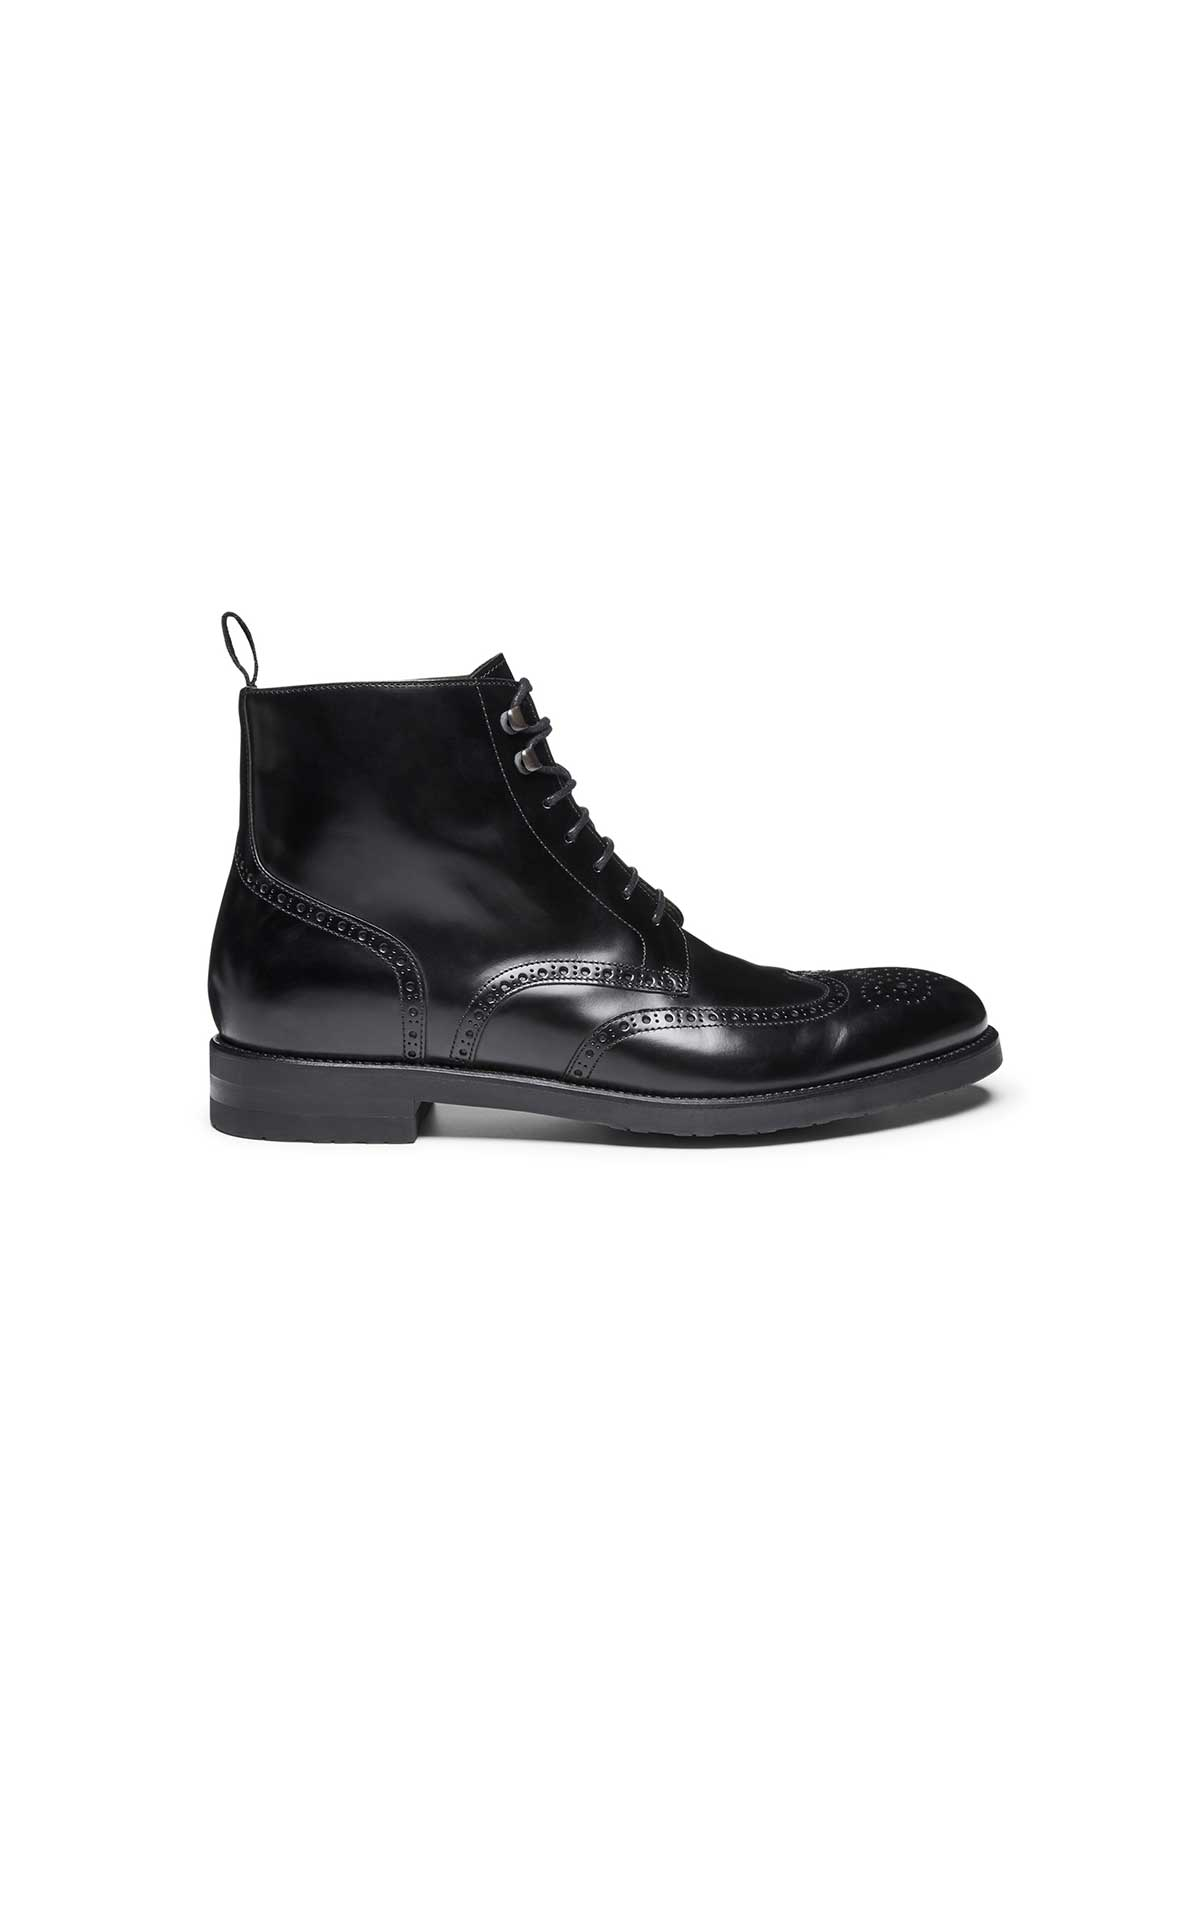 Lace-up black ankle boots for men from Lottusse